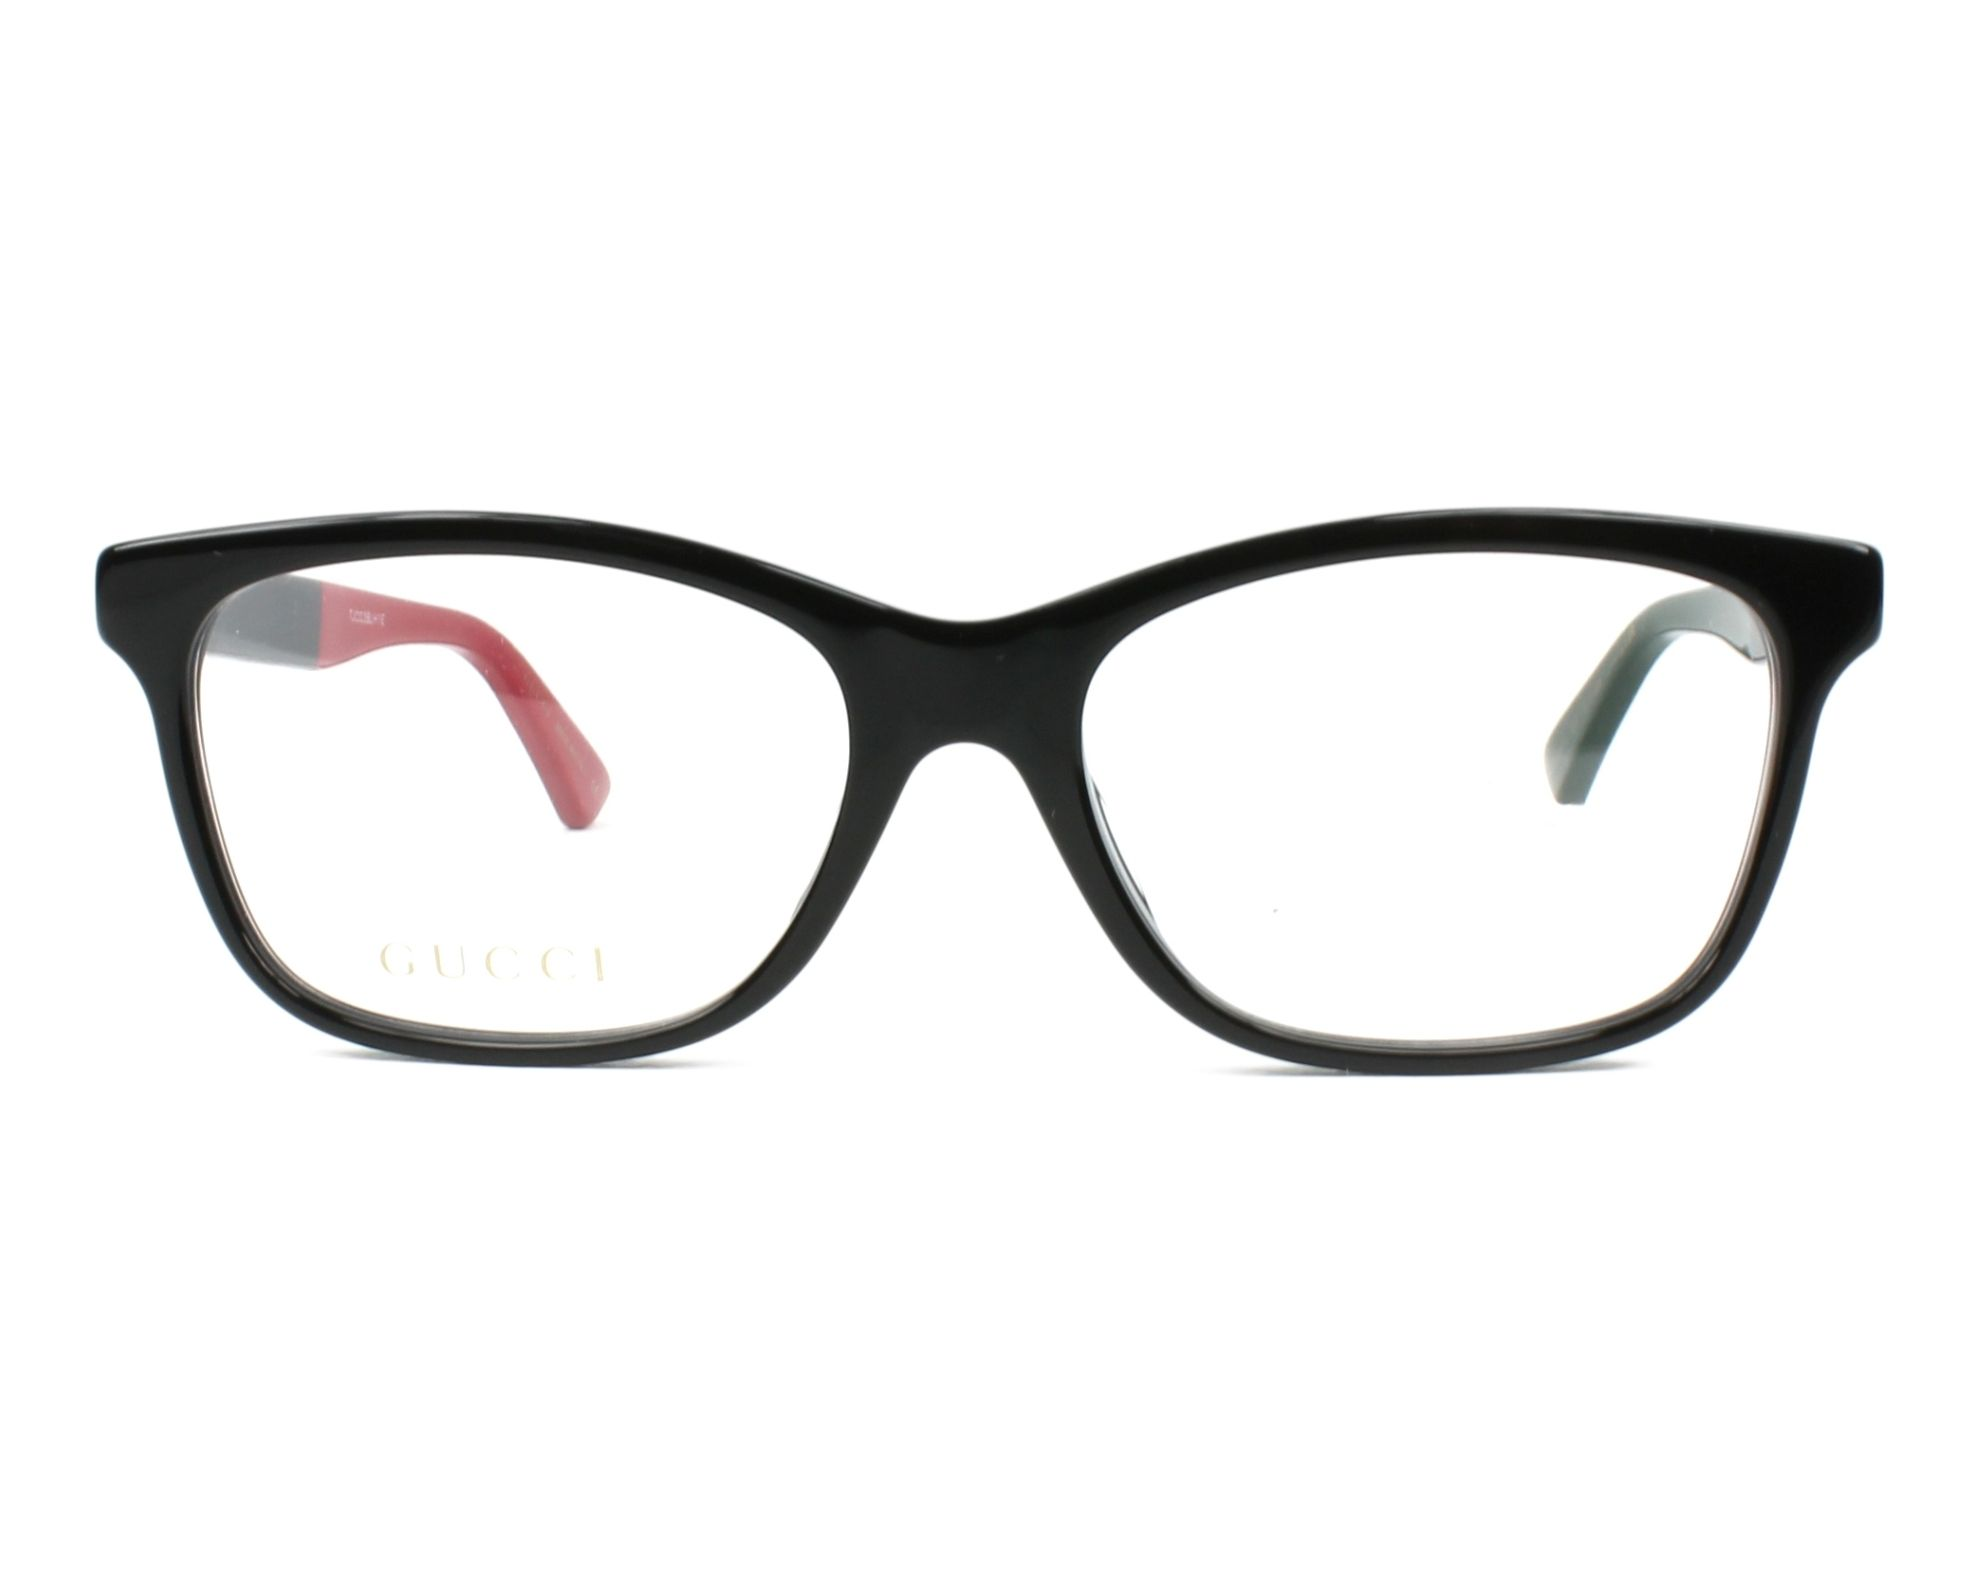 2f0d2dcc802e eyeglasses Gucci GG-0162-OA 003 55-17 Black Red front view